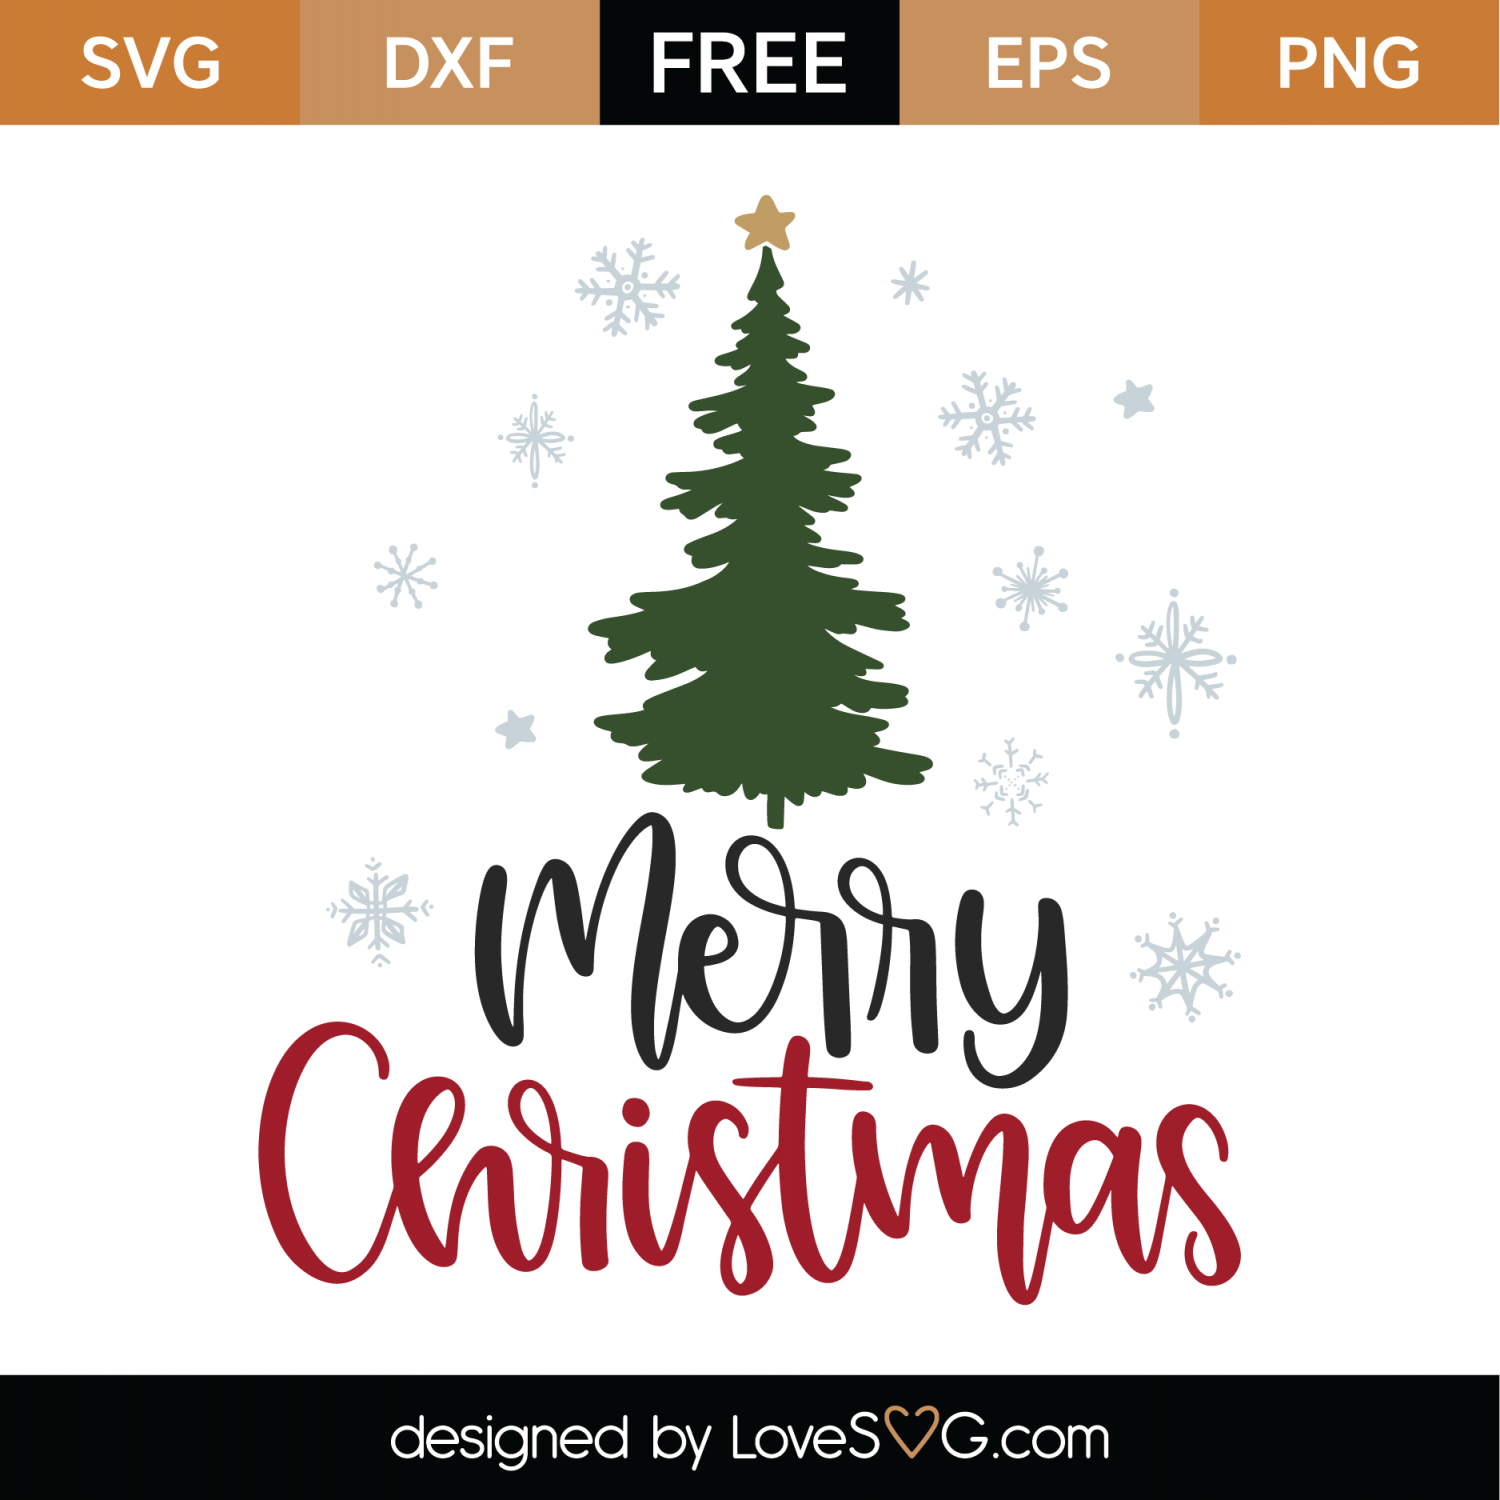 Merry Christmas Images.Free Merry Christmas Svg Cut File Lovesvg Com